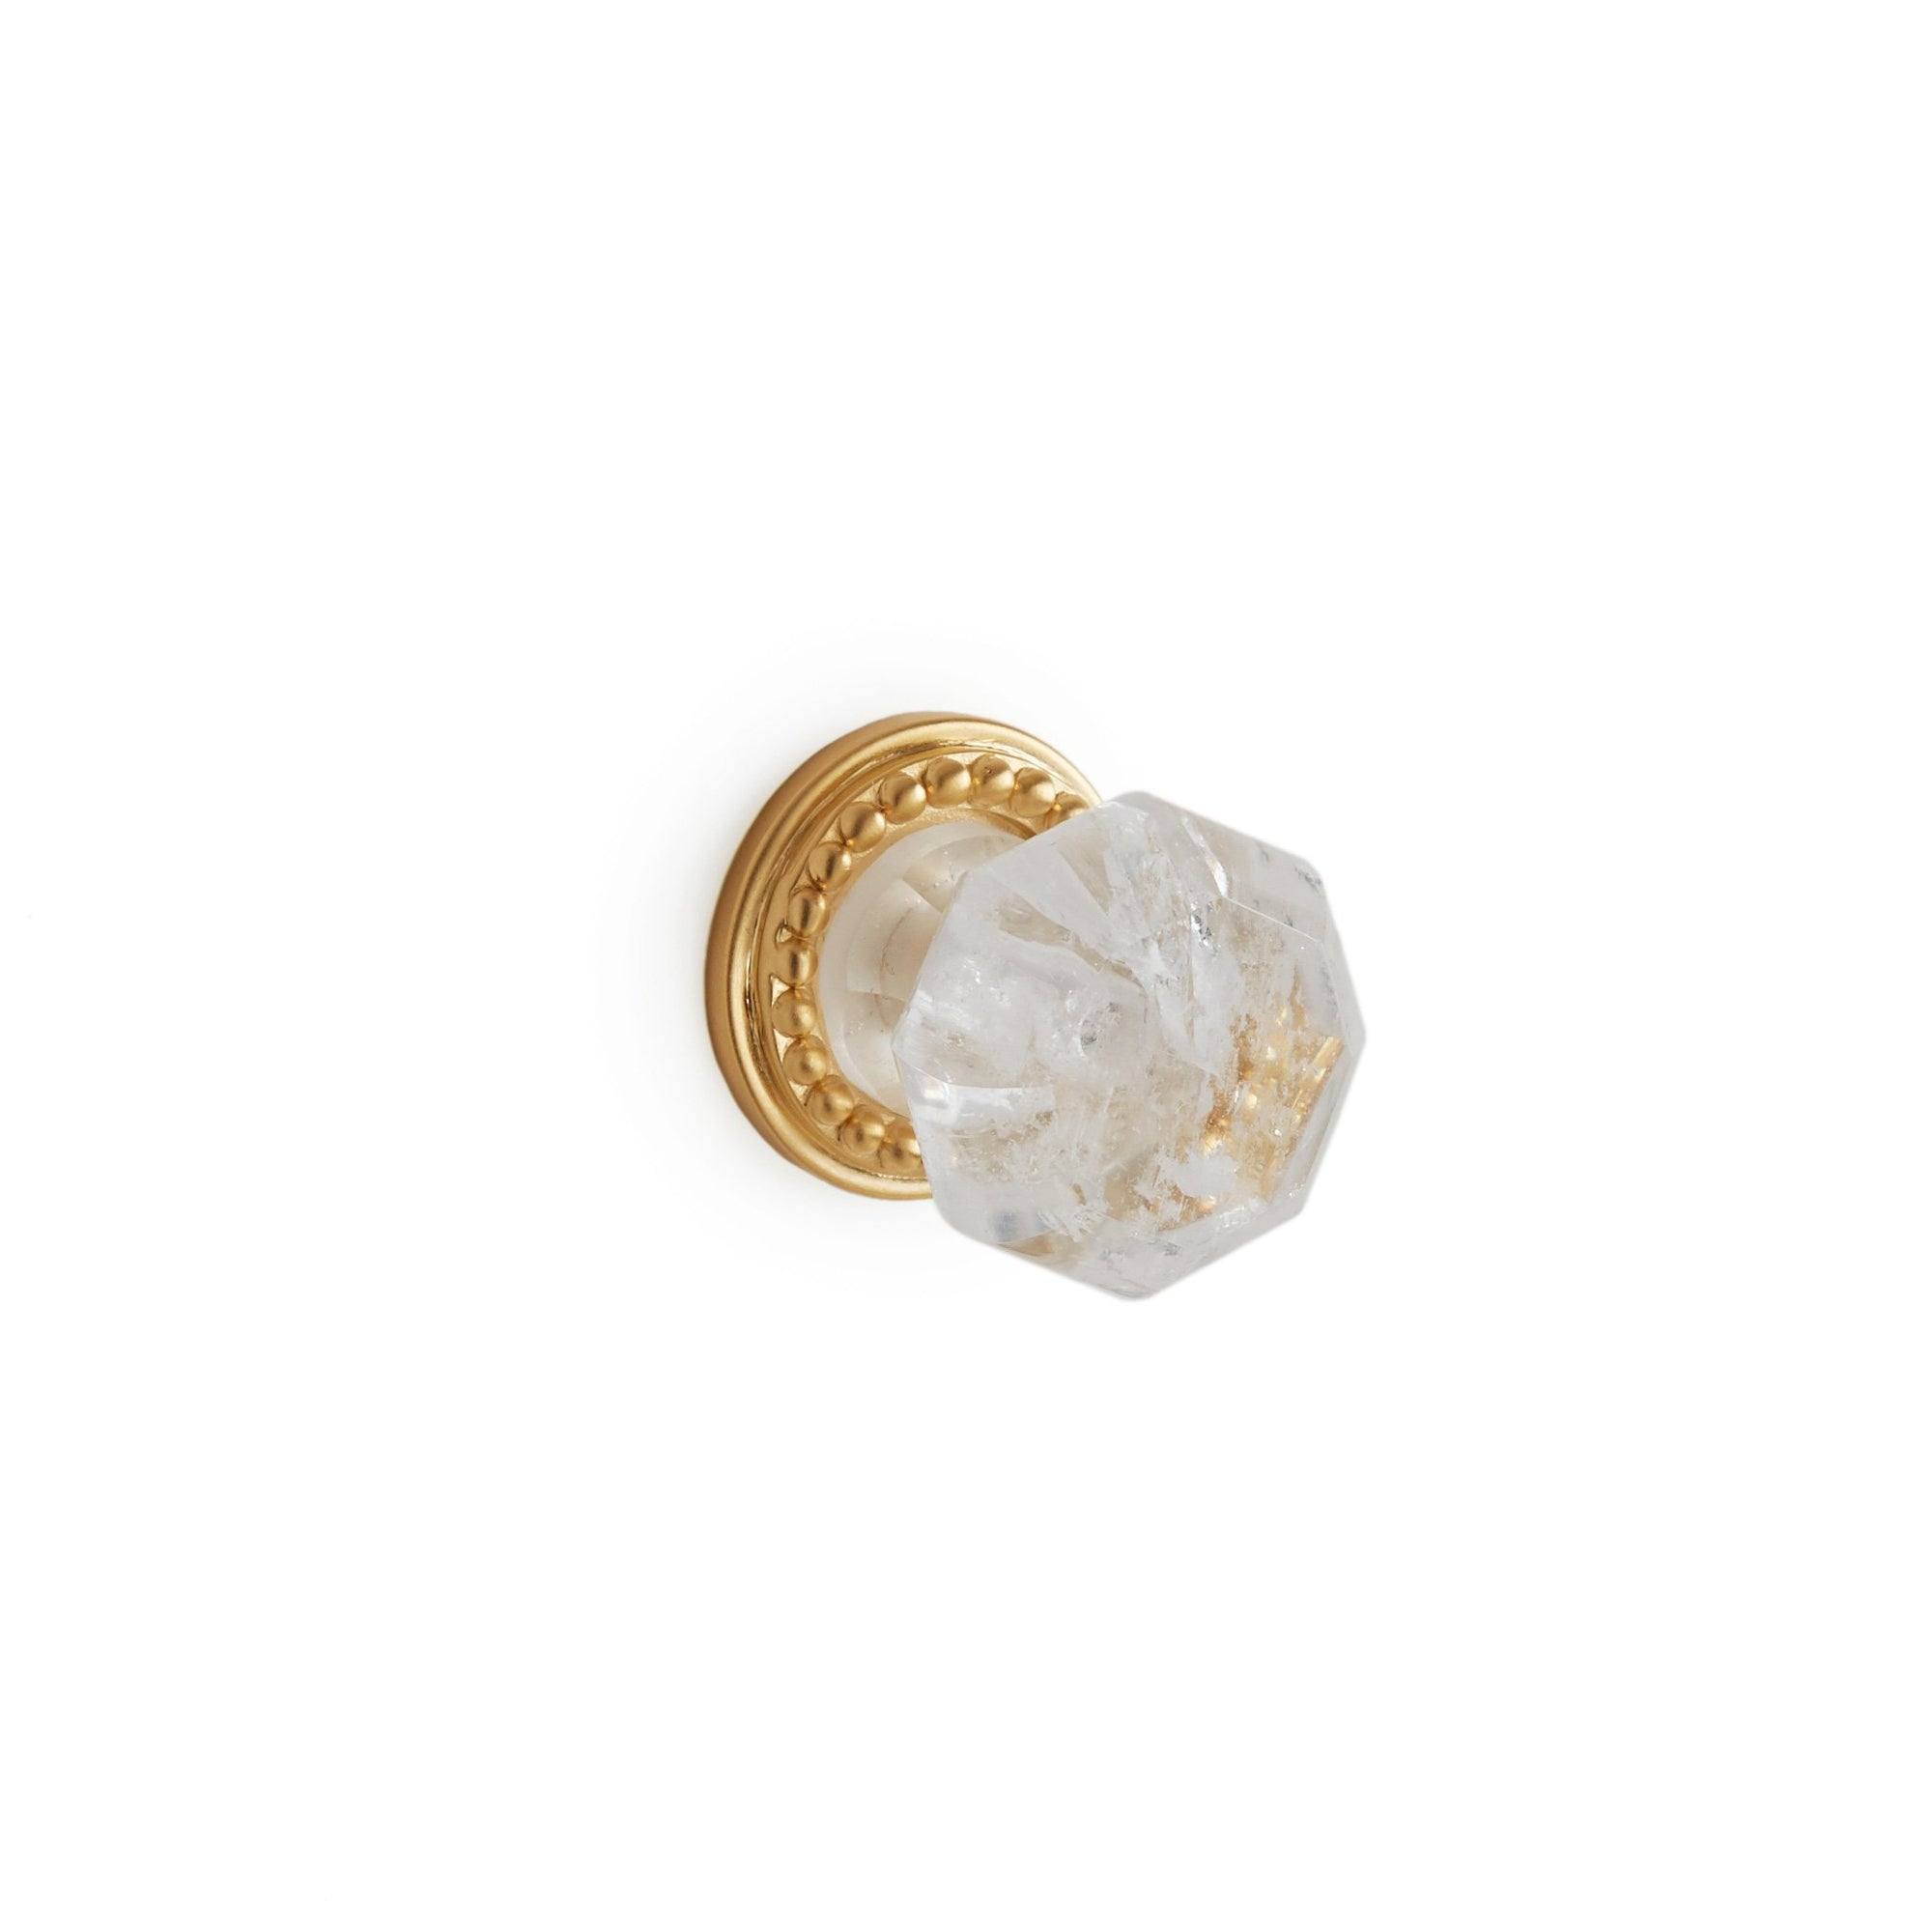 0023-1-RKCR-GP Sherle Wagner International Semiprecious Rock Crystal Octagon Cabinet & Drawer Knob in Gold Plate metal finish